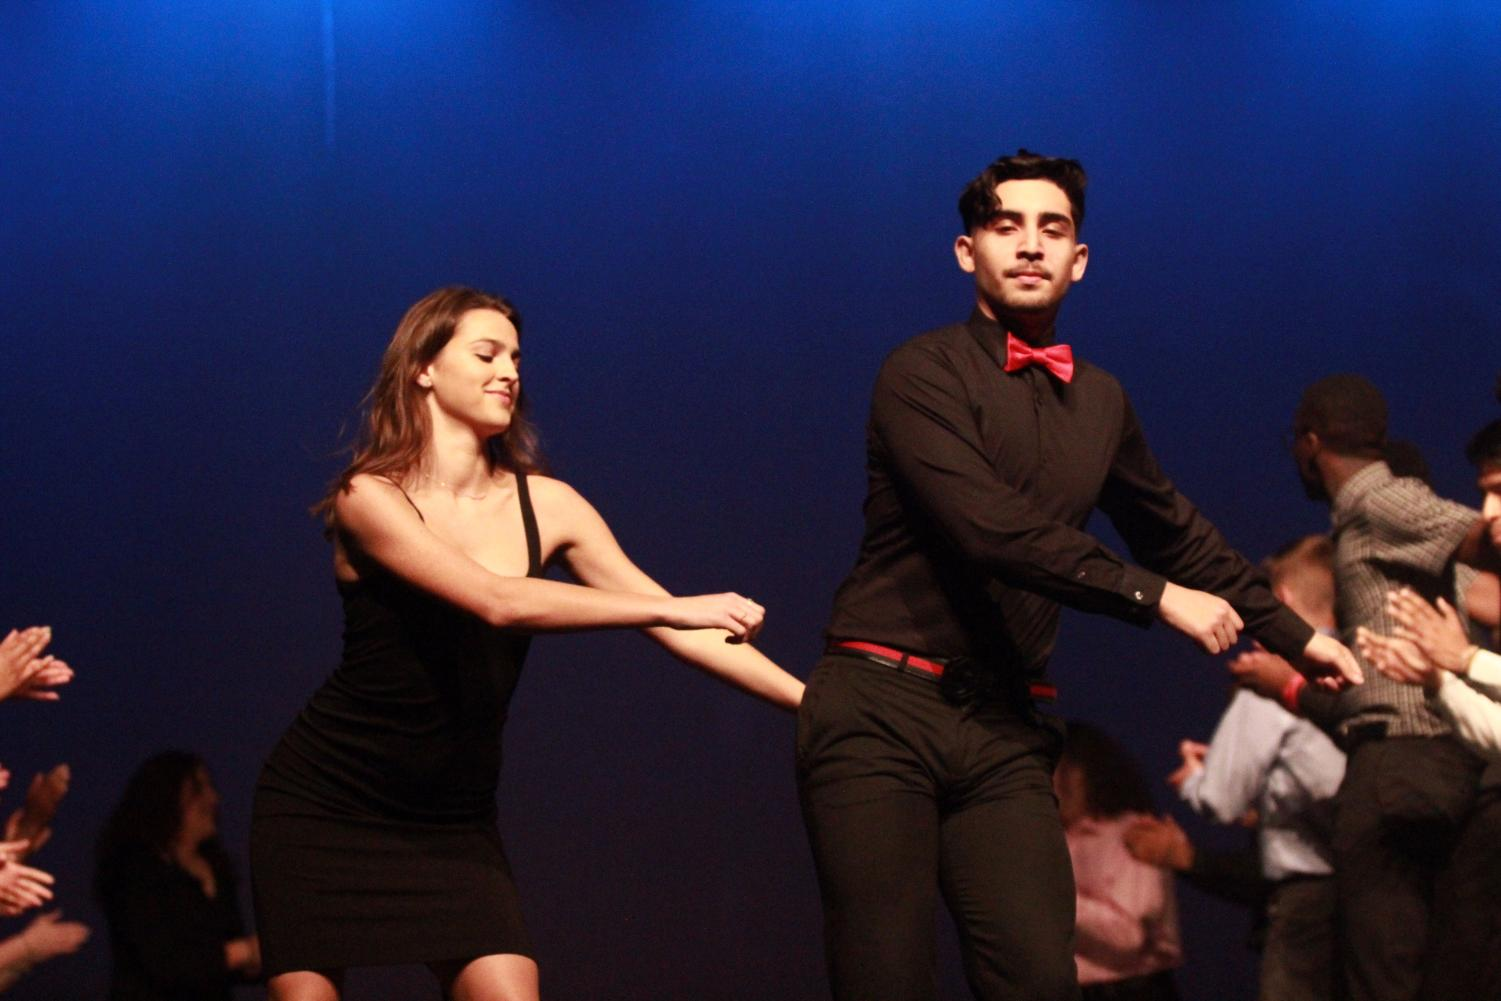 Seniors+Isai+Flores+and+Annie+Riley+hit+%22The+Floss%22+during+the+opening+performance+during+Mr.+Watkins+Mill.